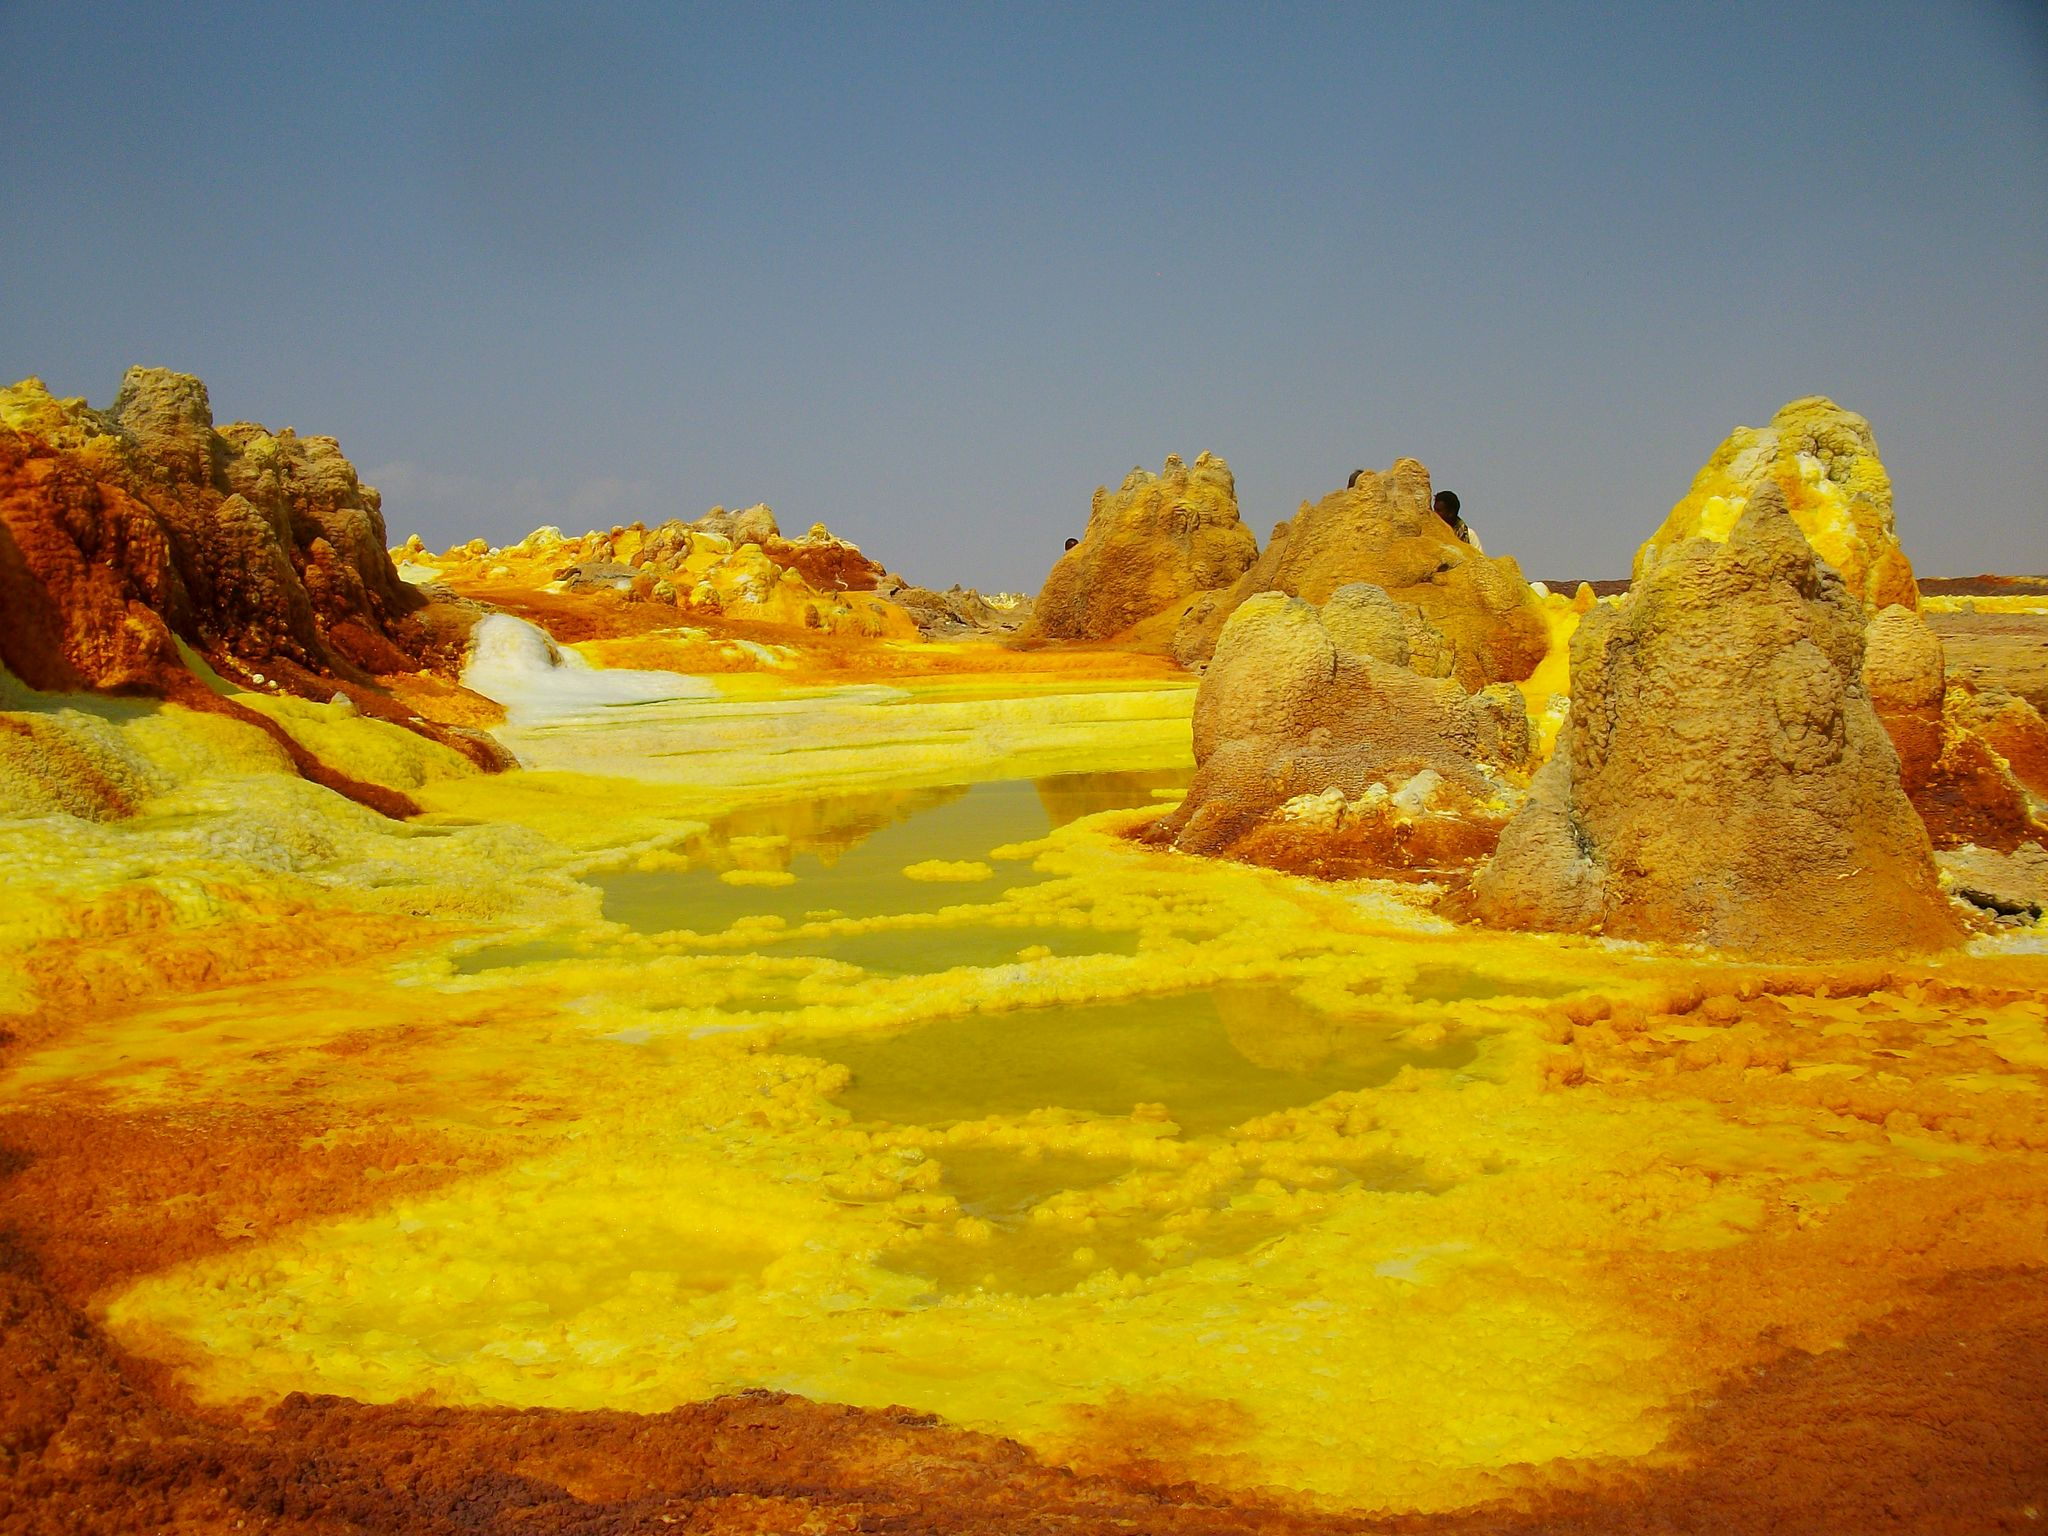 abyss land ,the lowest place in the world ,and the farthest place from the sky ,dallol